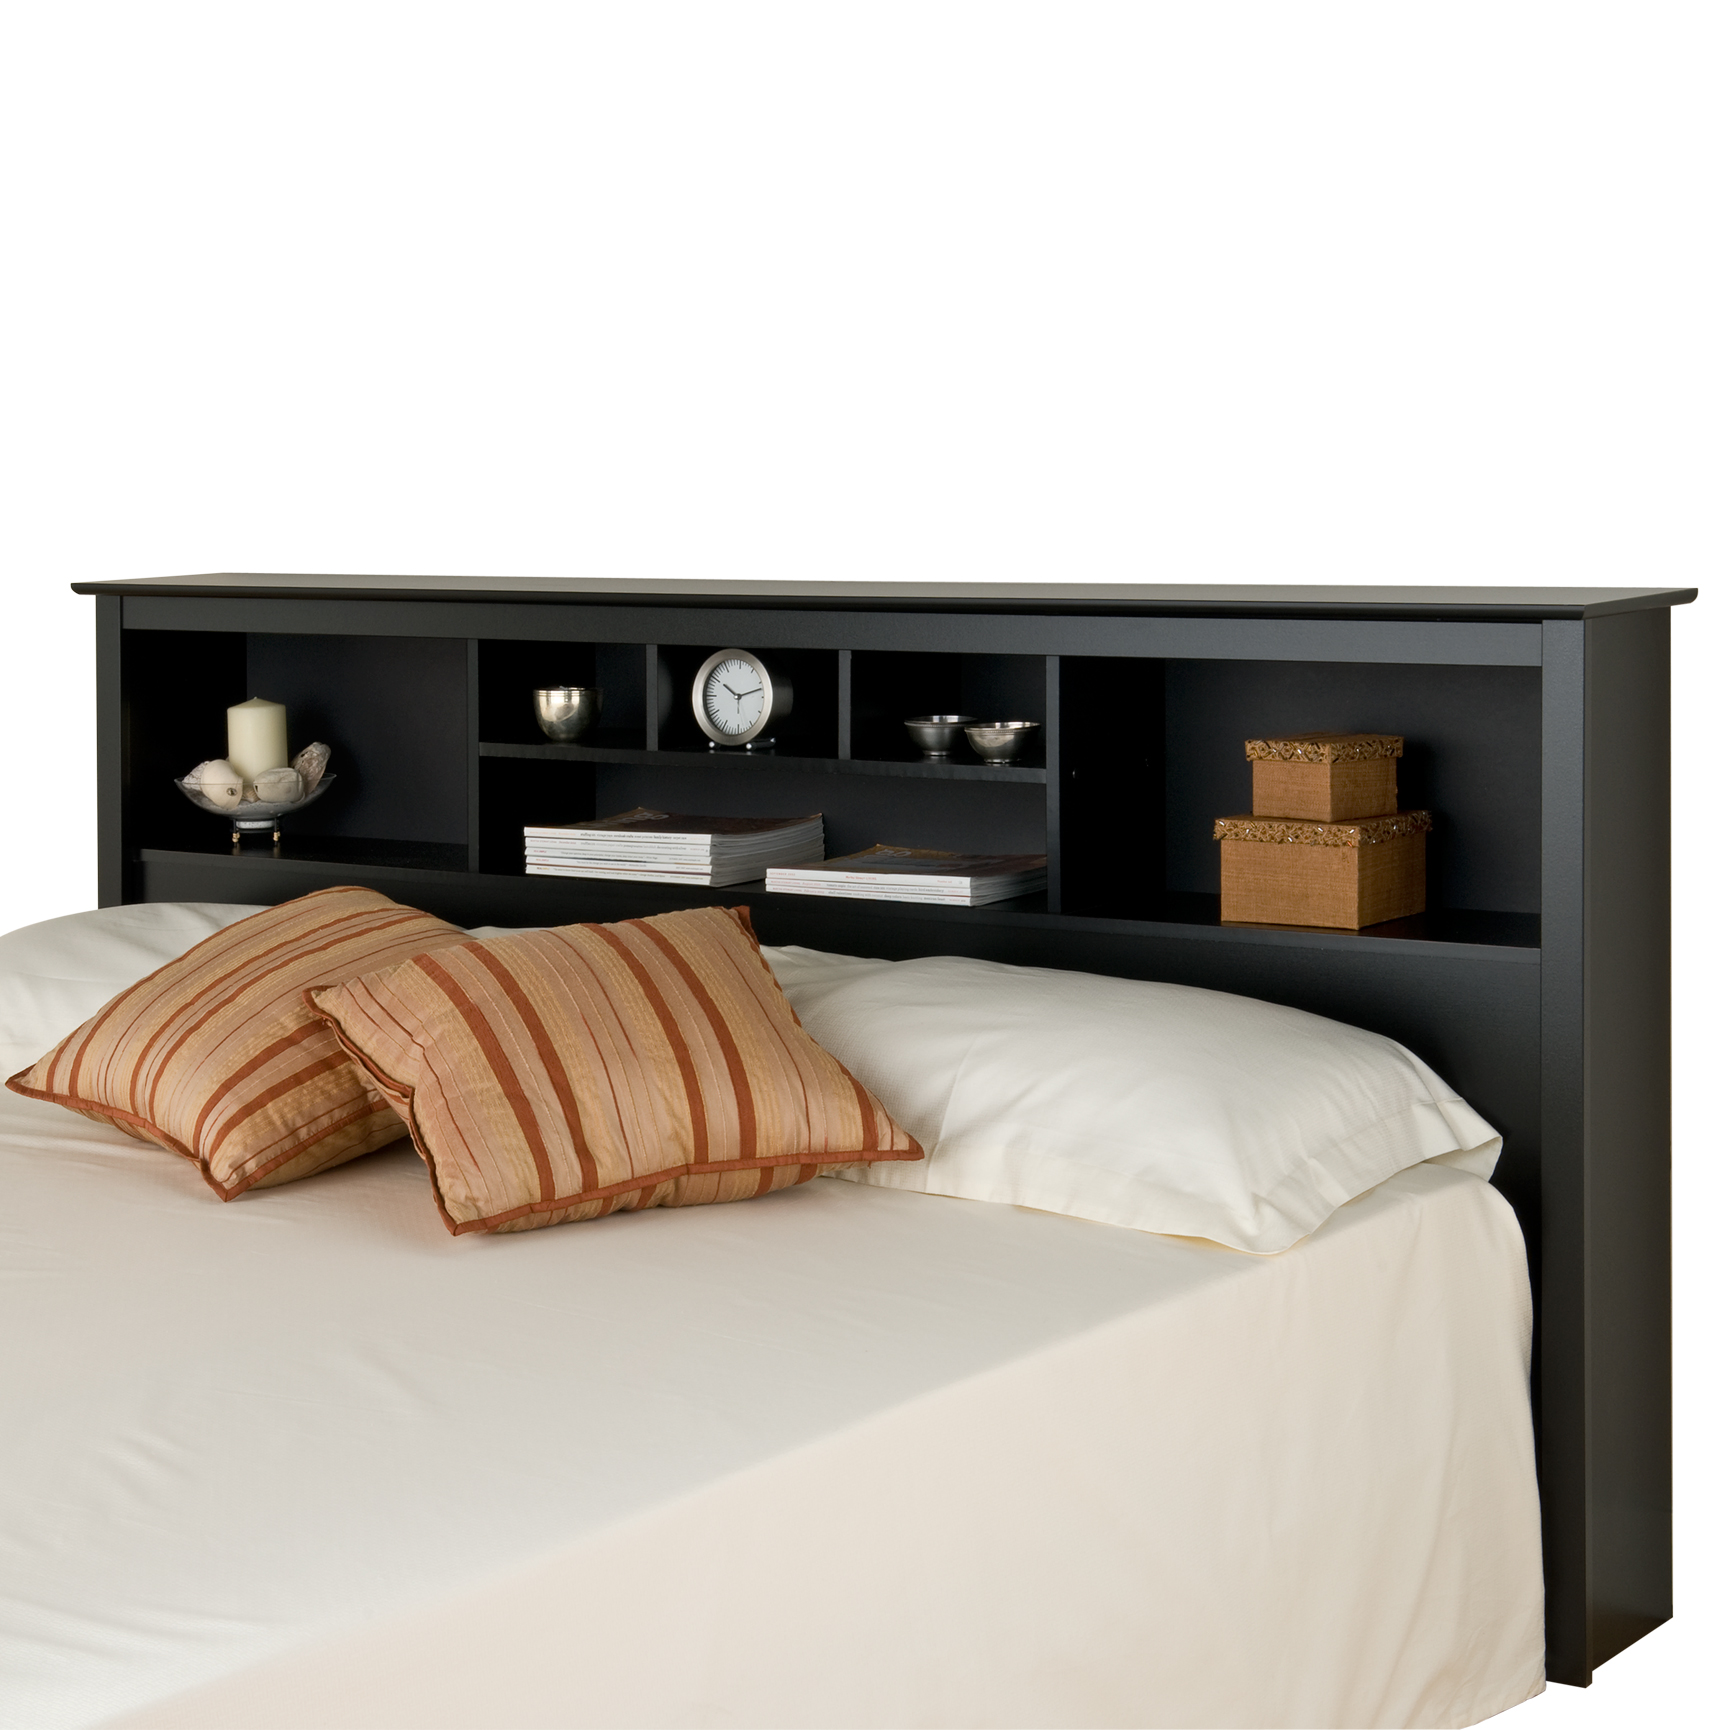 Bedding Storage Prepac Sonoma Black King Storage Headboard